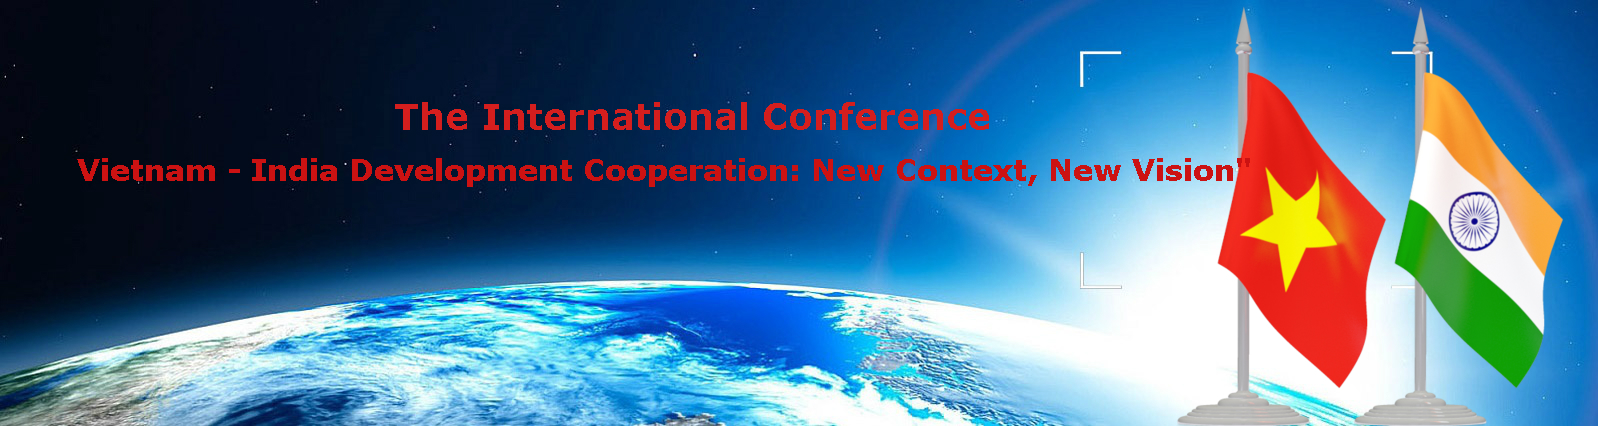 "Offer Writing Paper and Attendance for the International Conference ""Vietnam - India Development Cooperation: New Context, New Vision"""